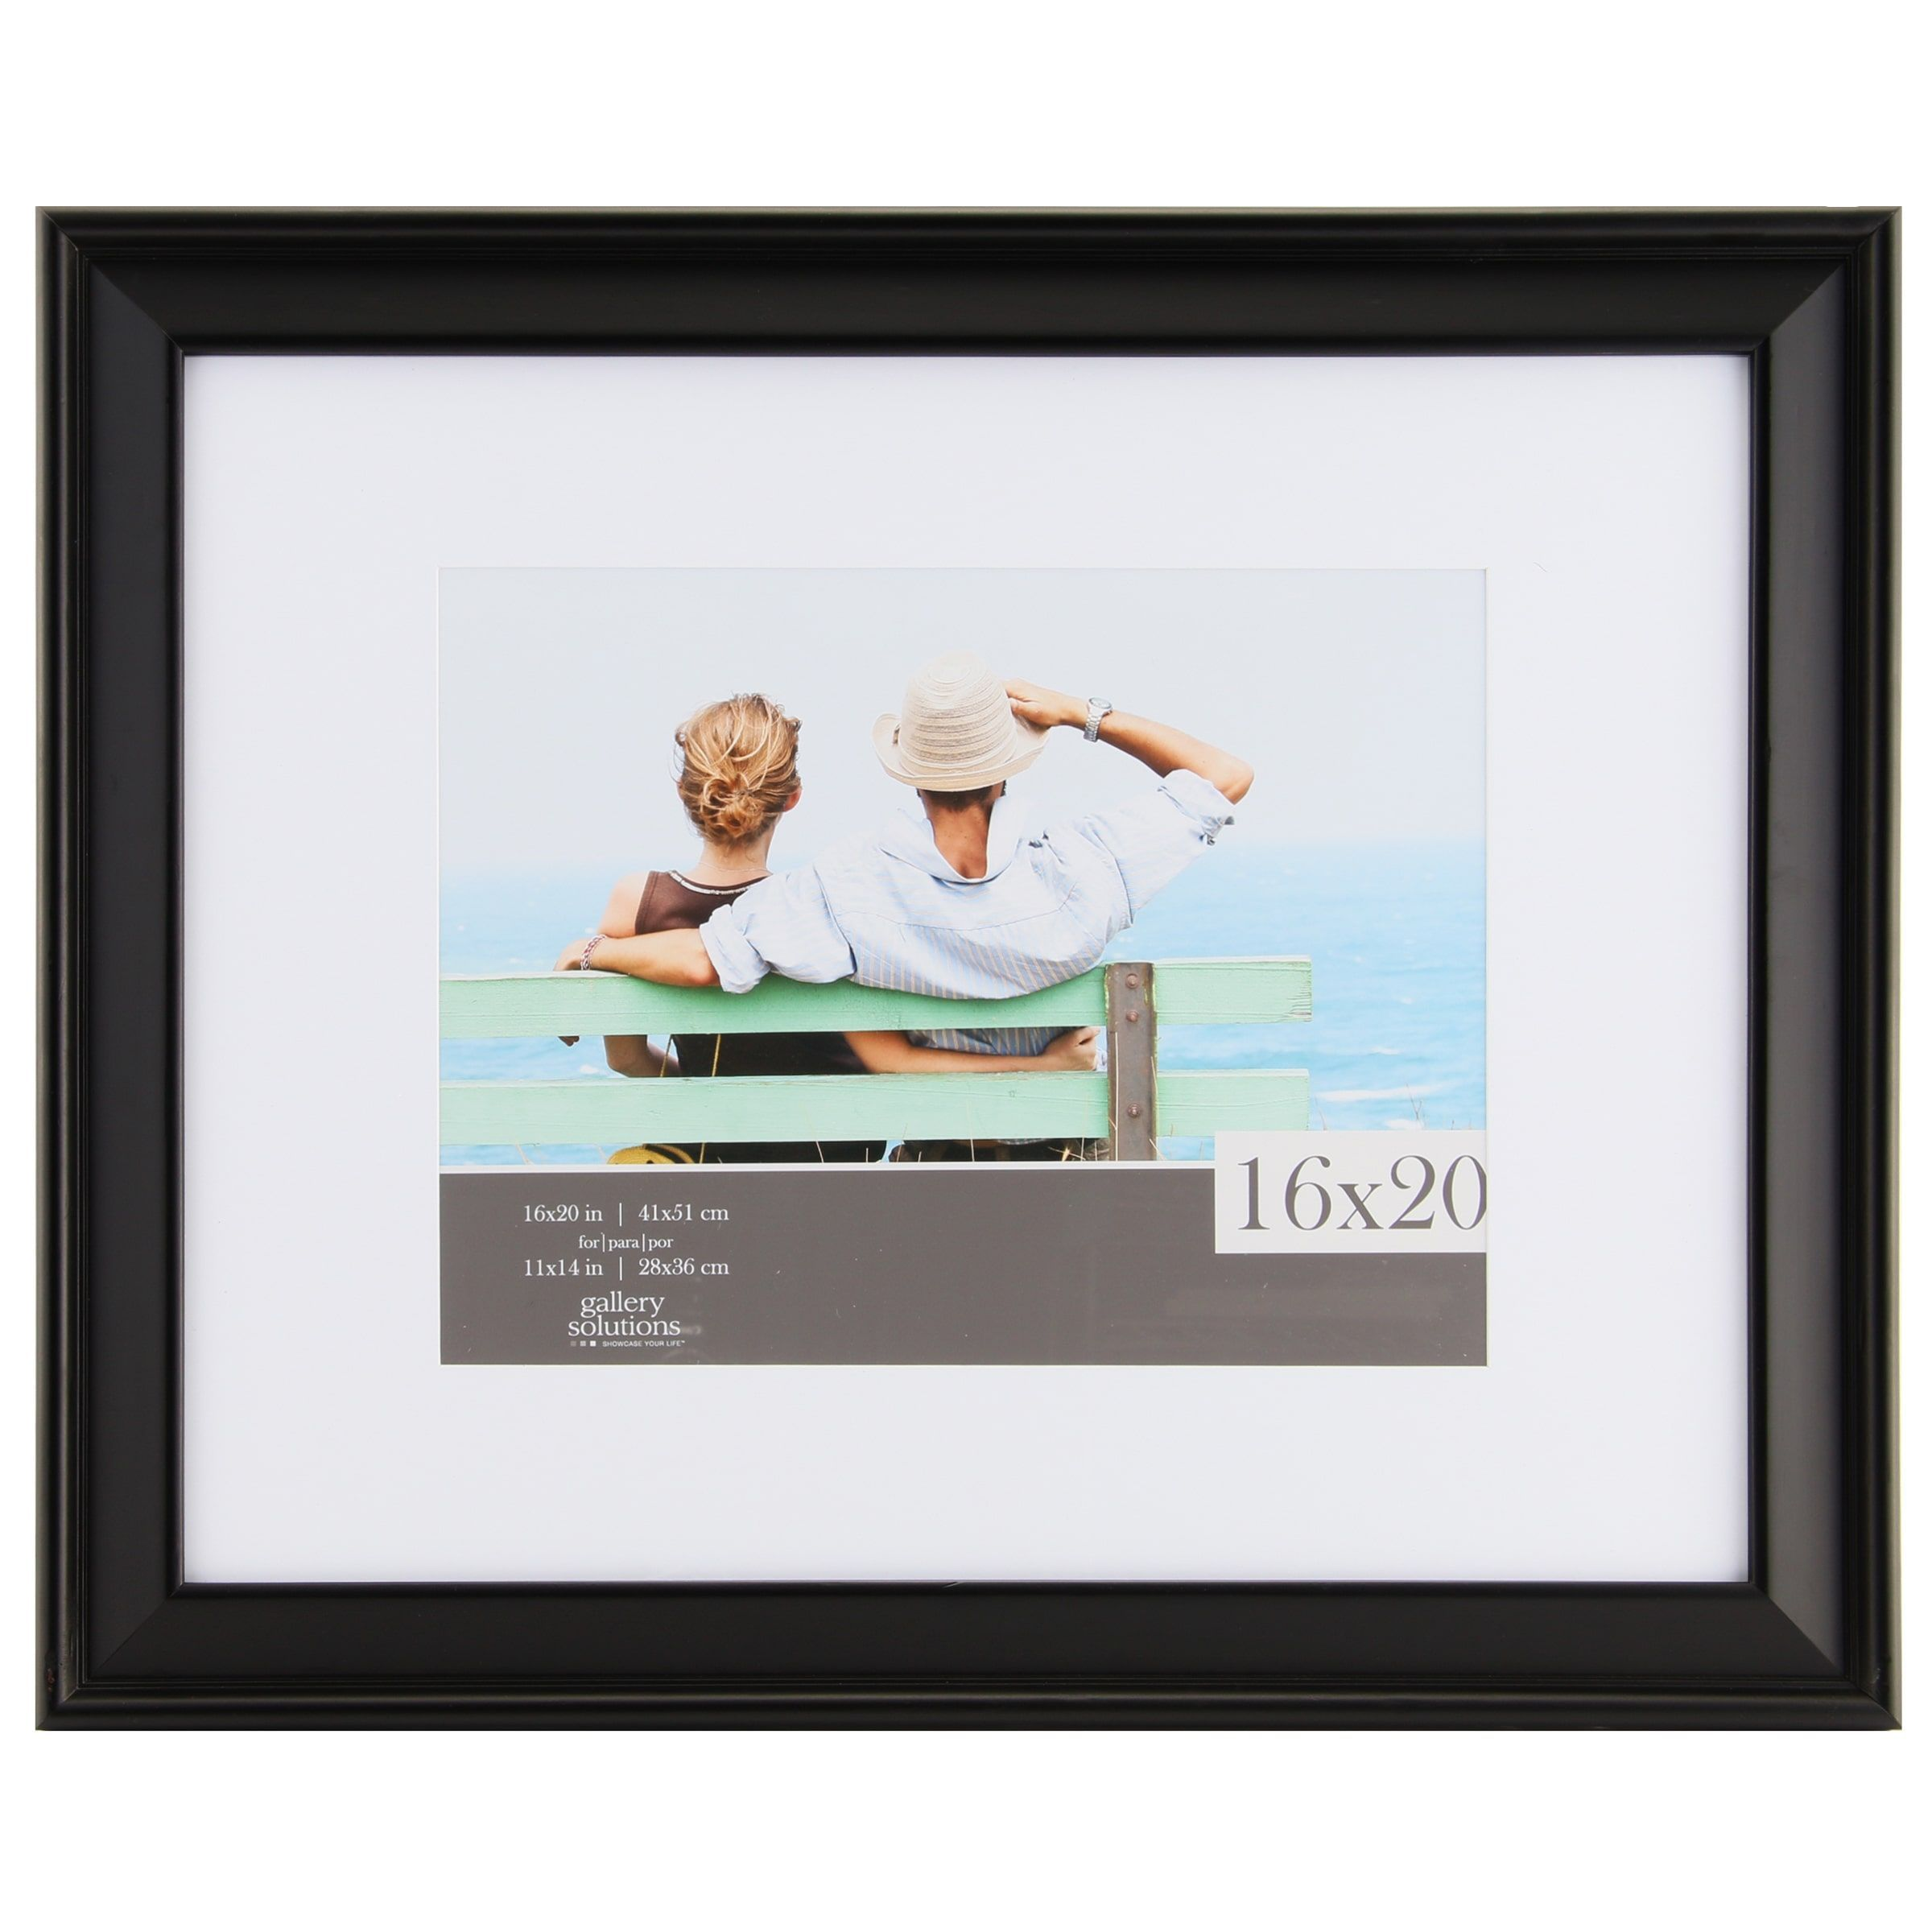 Gallery Solutions Black Wood Matted Photo Frame (11x14/16x20 ...